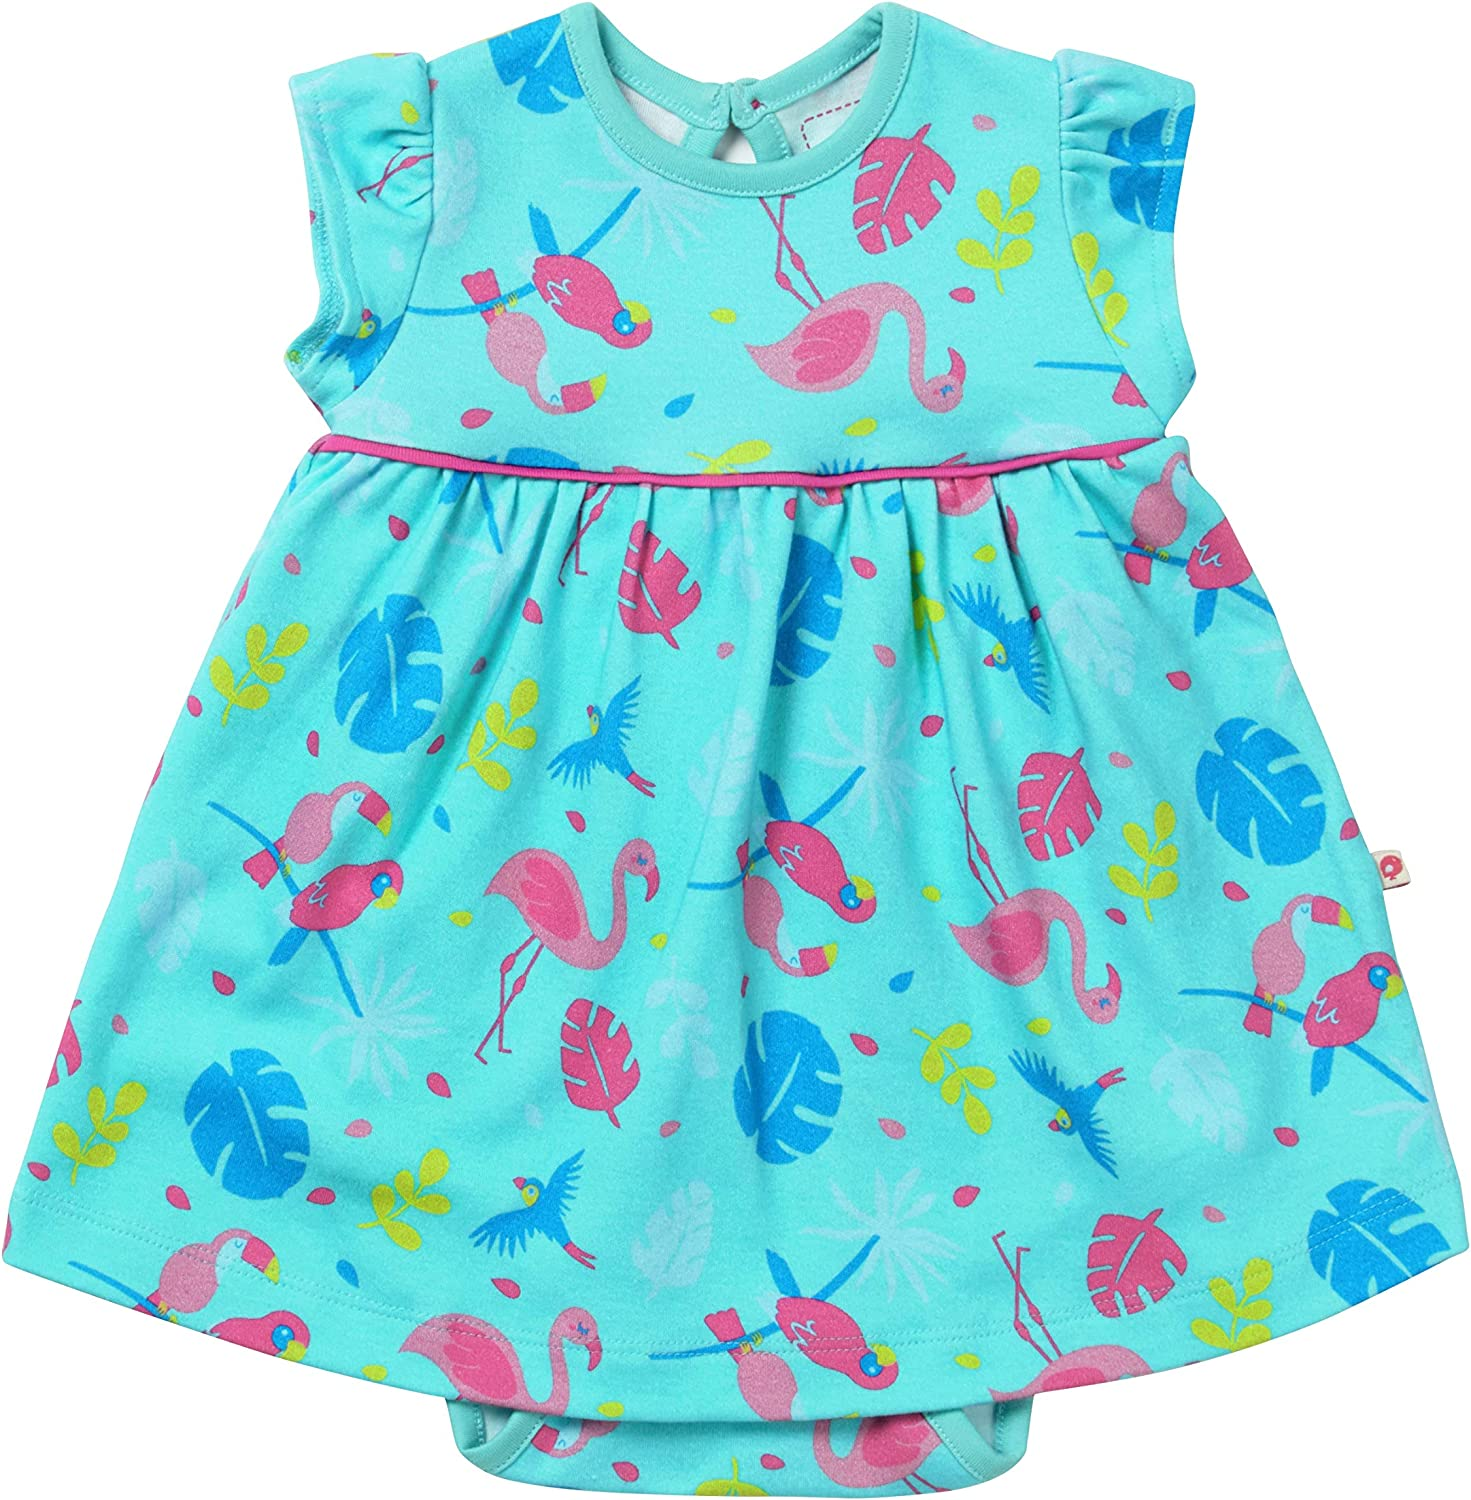 Piccalilly Baby Body Dress Organic Cotton Short Sleeves Turquoise Tropical Flamingo